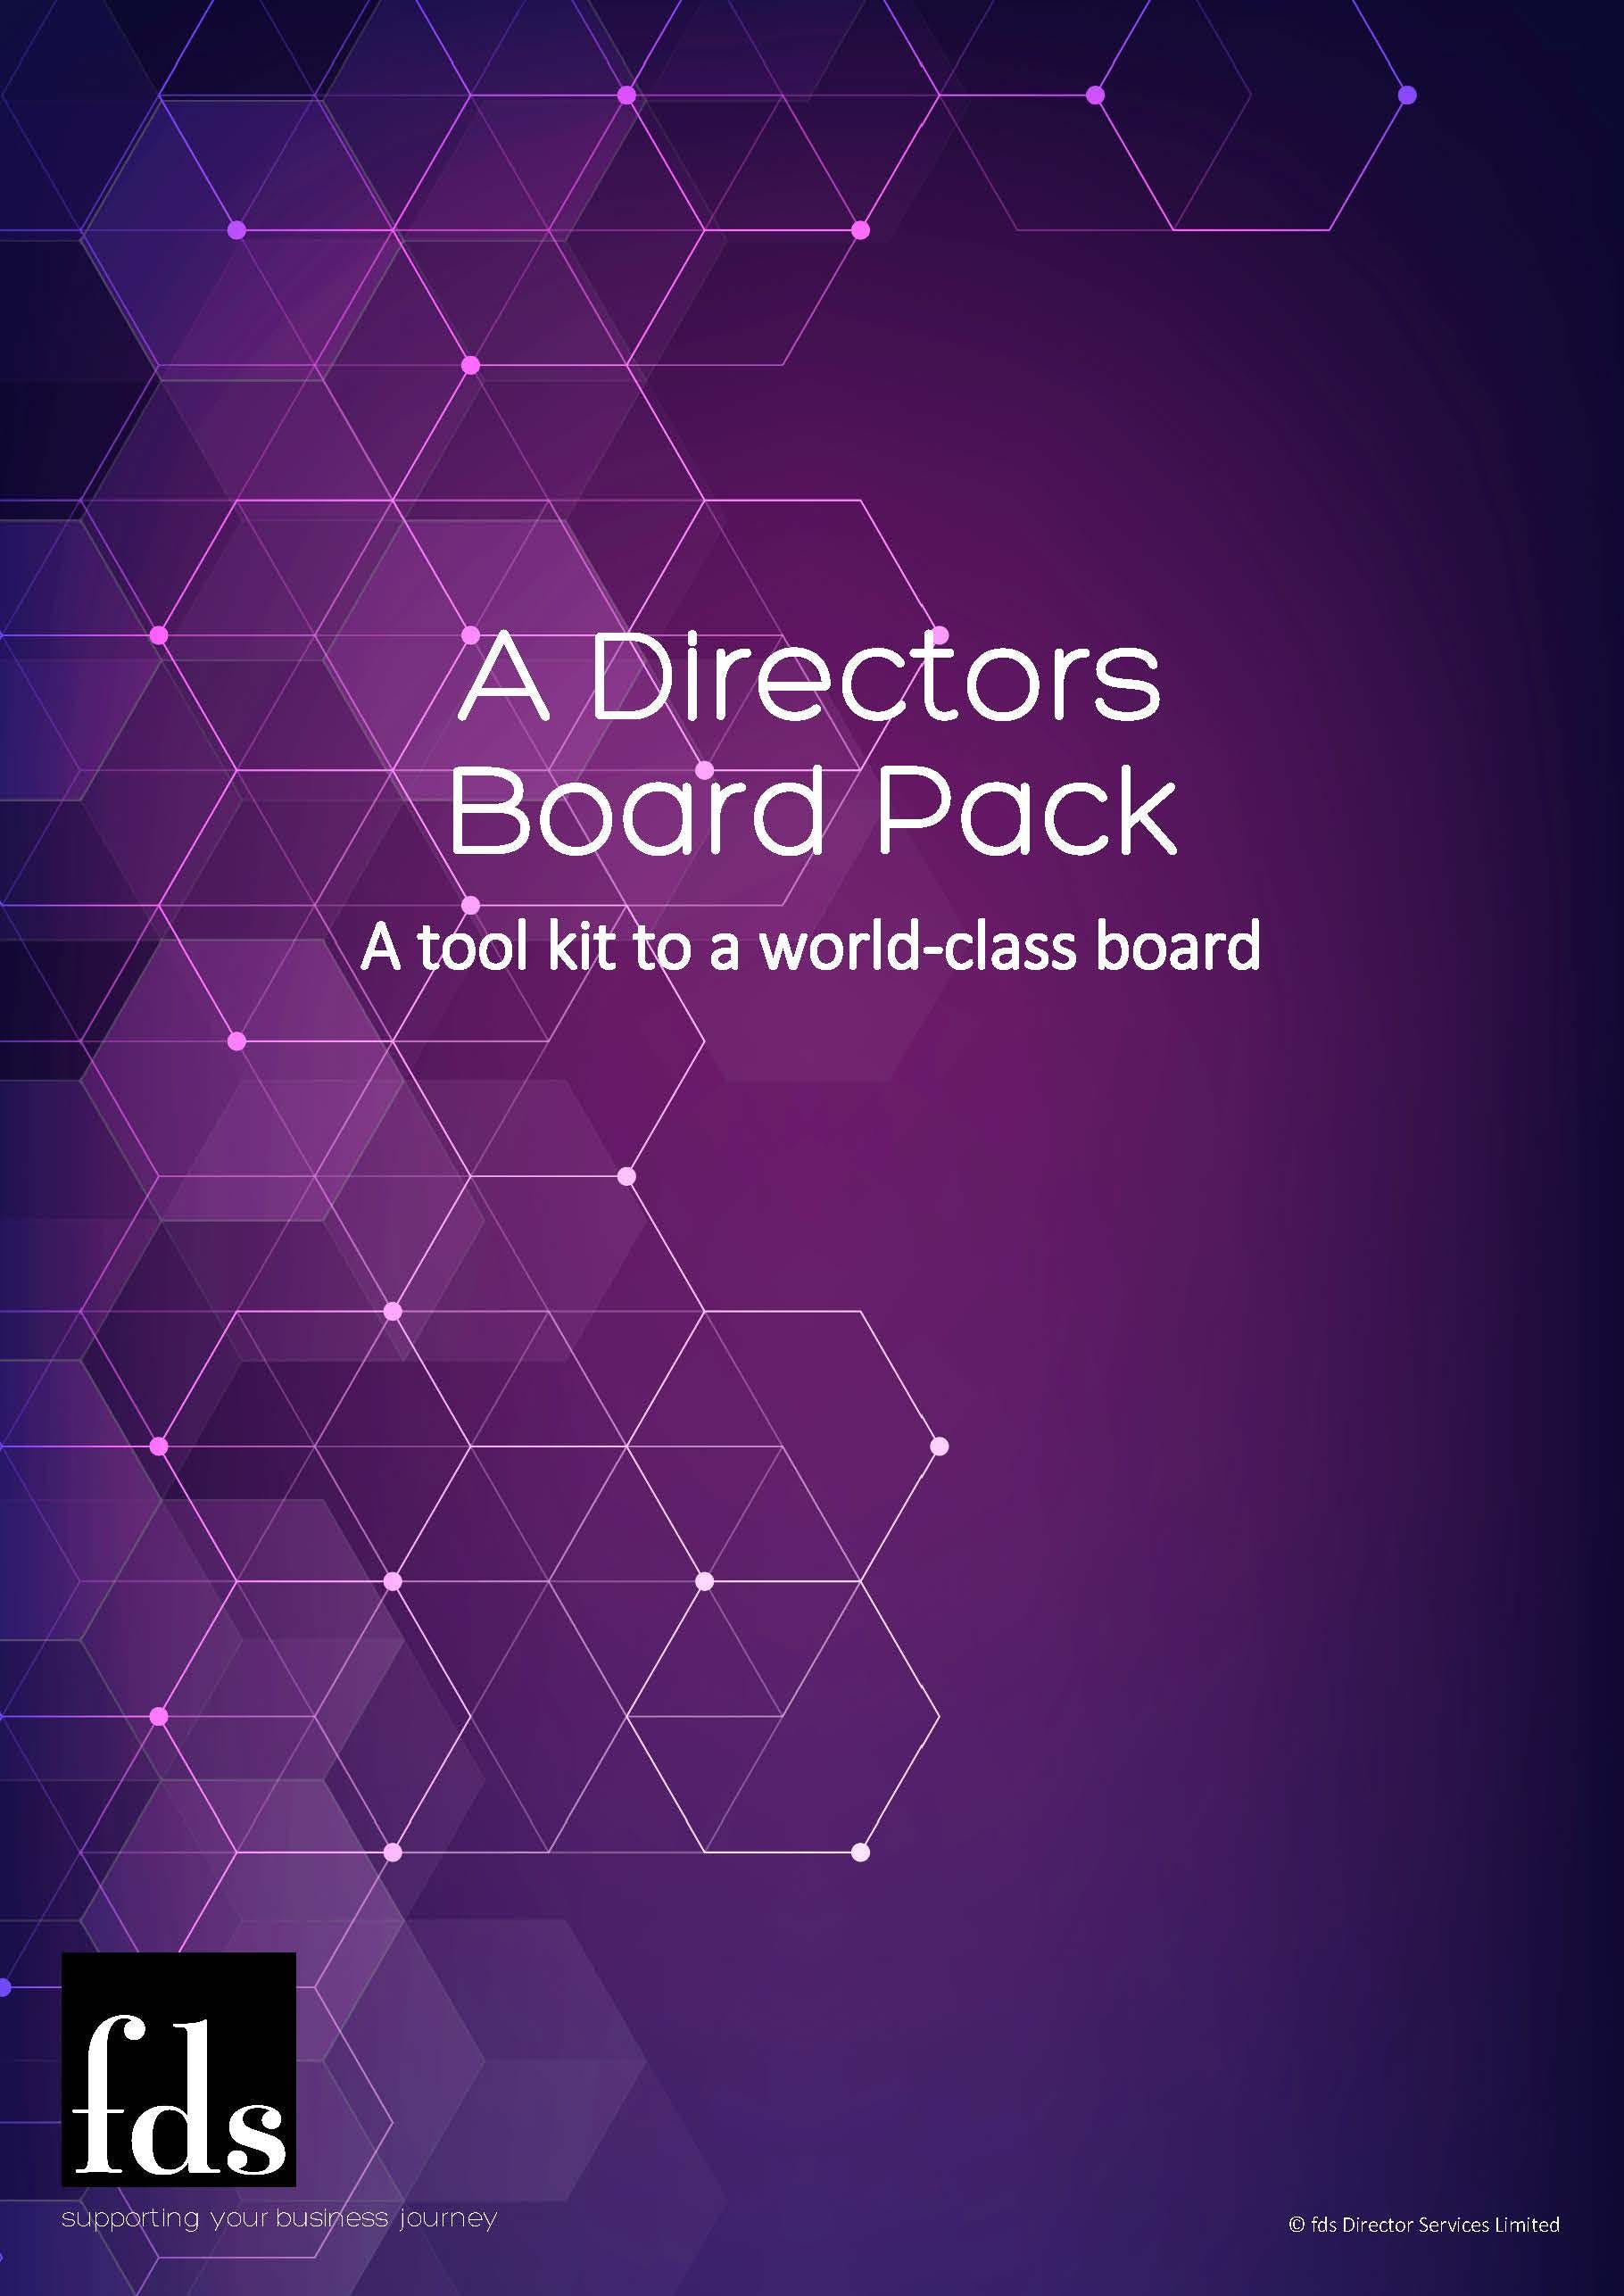 fds - A Directors Board Pack Downloadable Resource